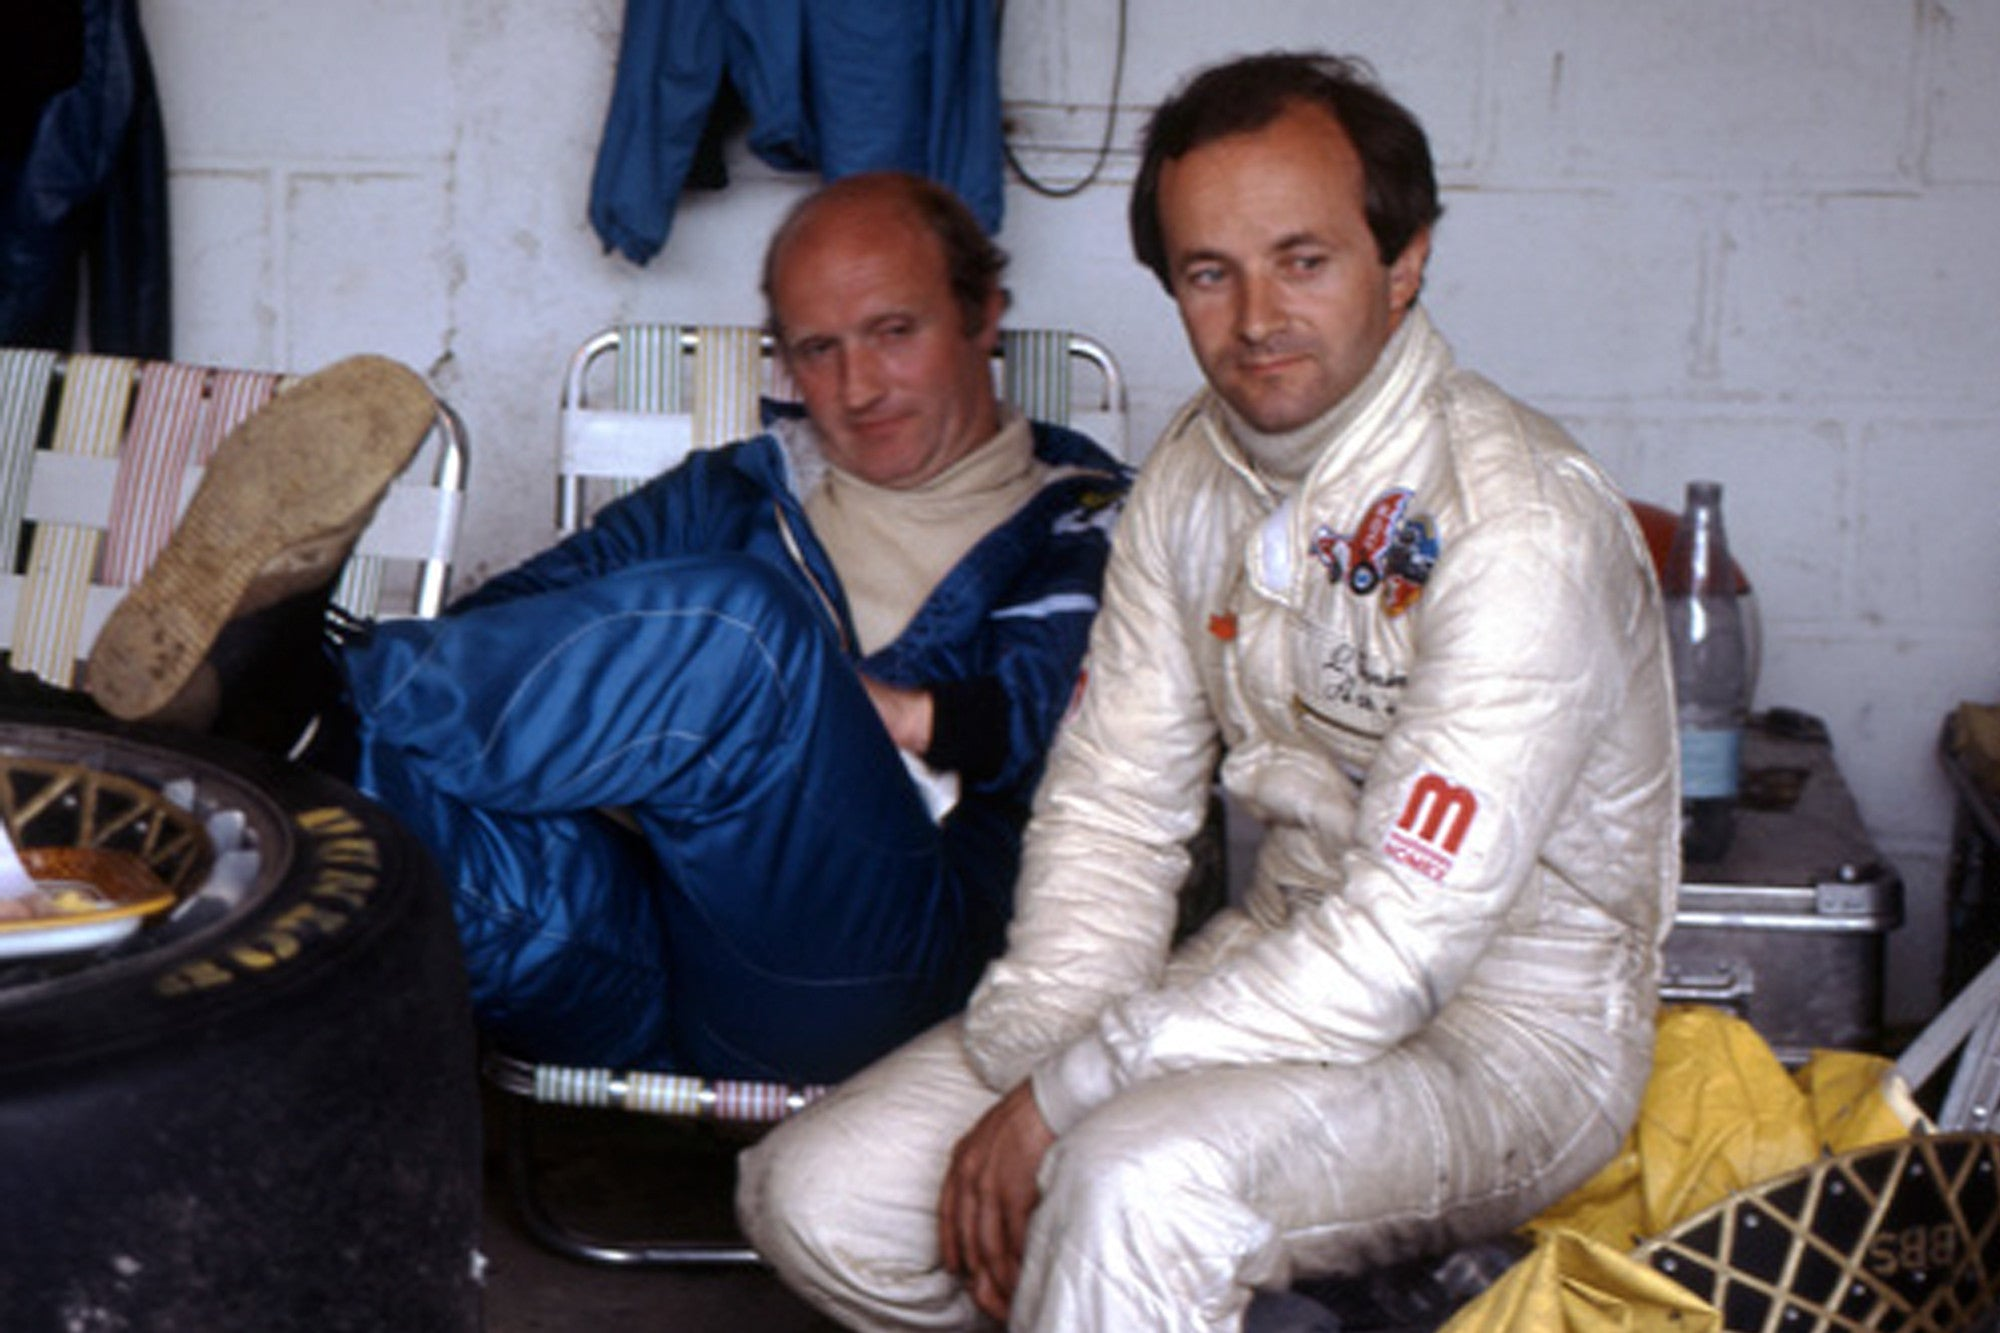 François Servanin and Laurent Ferrier racing at Le Mans